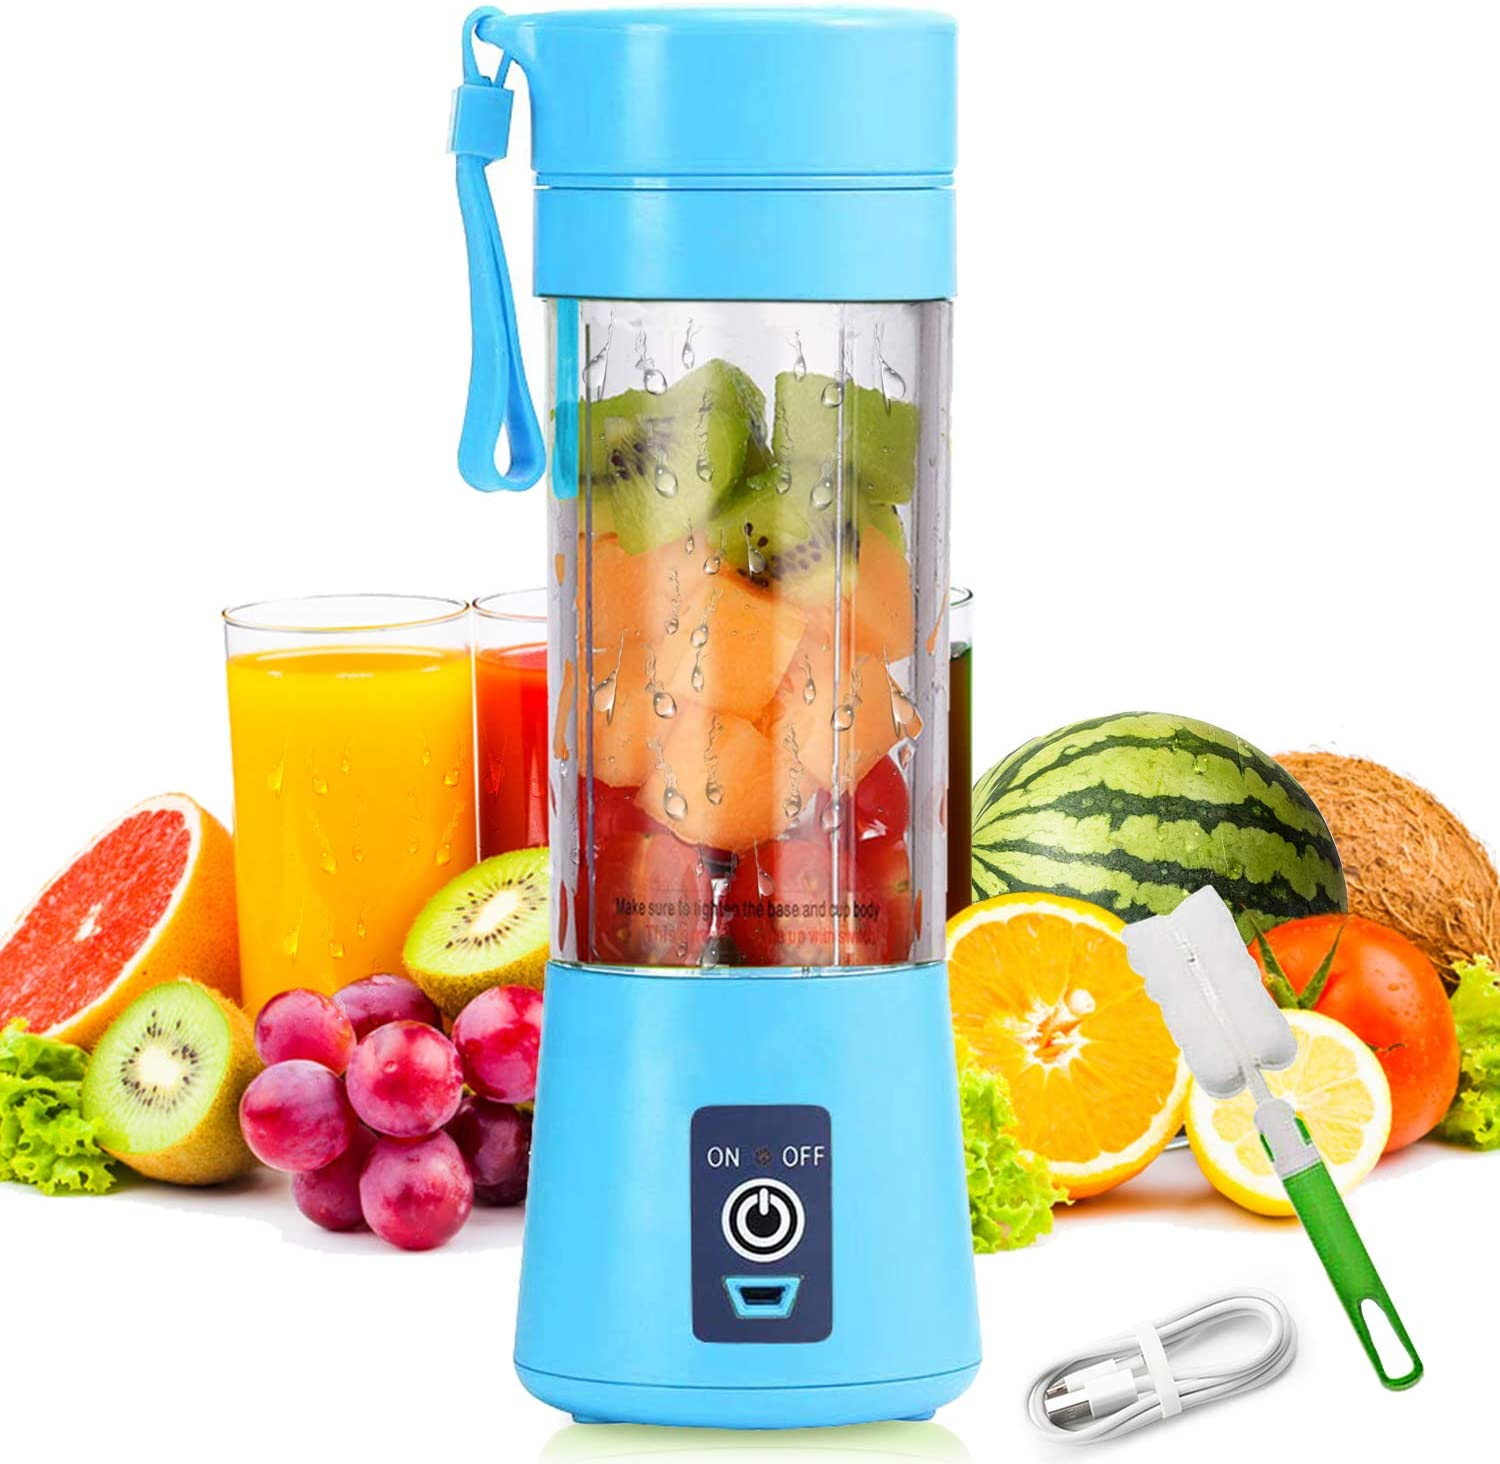 Portable Electric Automatic Juicer, Personal Size Blender Shakes and Smoothies Juicer Cup-Six Blades in 3D,Handheld Fruit Machine -Blue